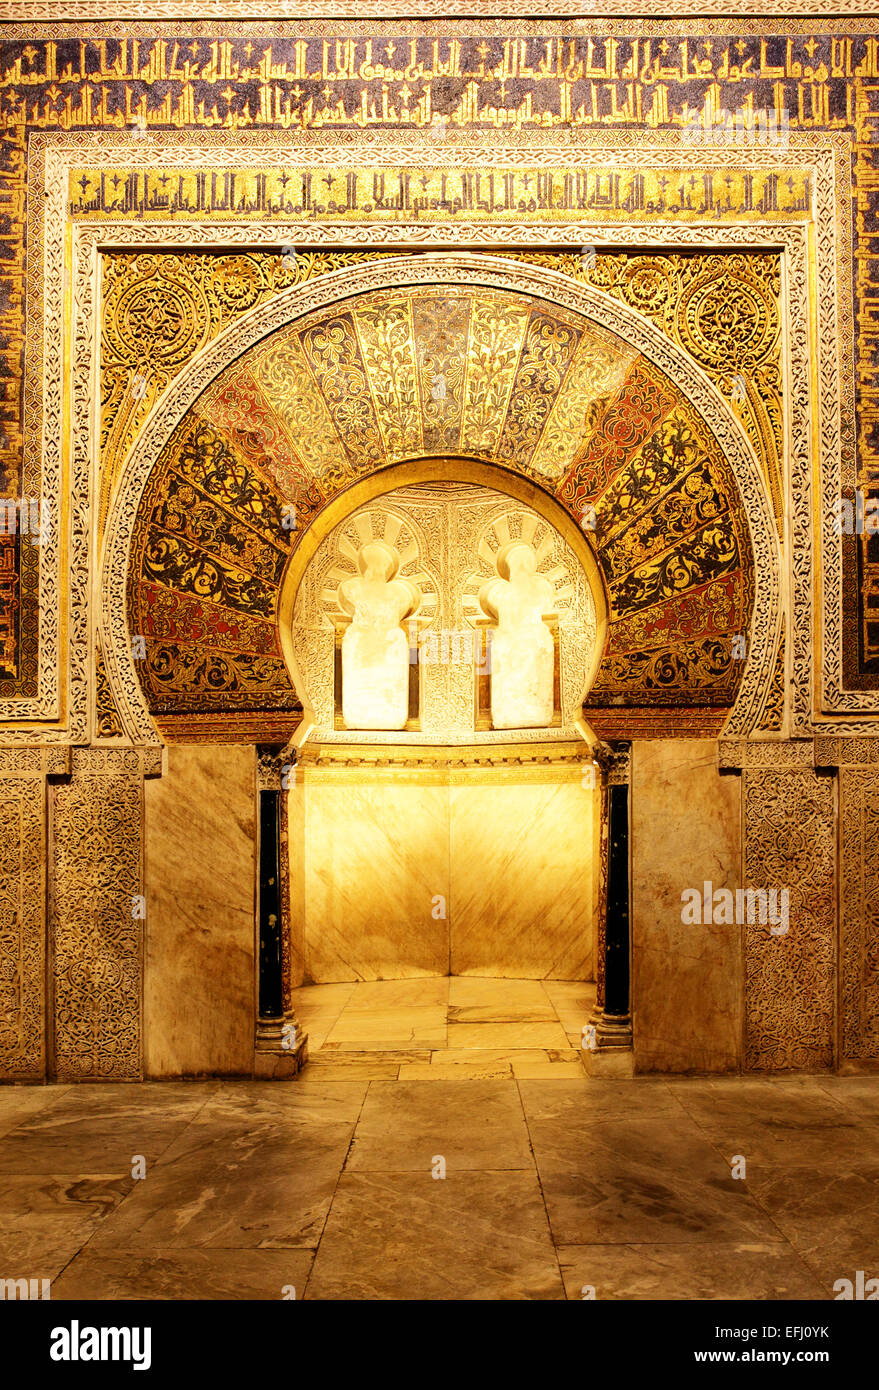 The Great Mosque of Cordoba (Mezquita) interior, Spain - Stock Image